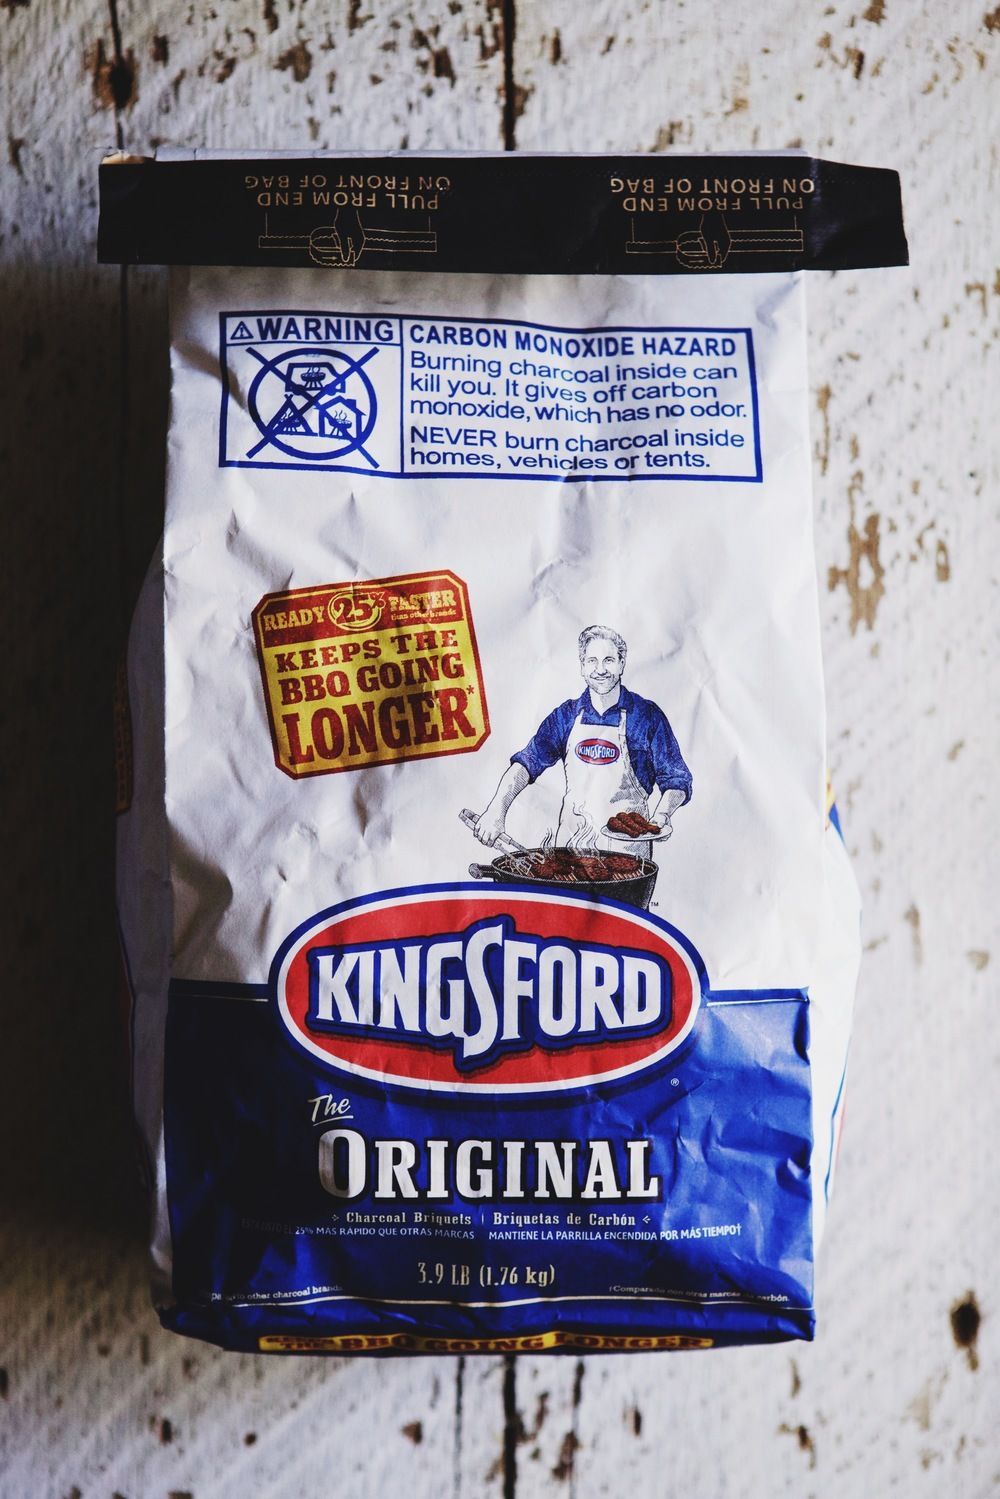 grilled bananas foster sundaes with kingsford charcoal